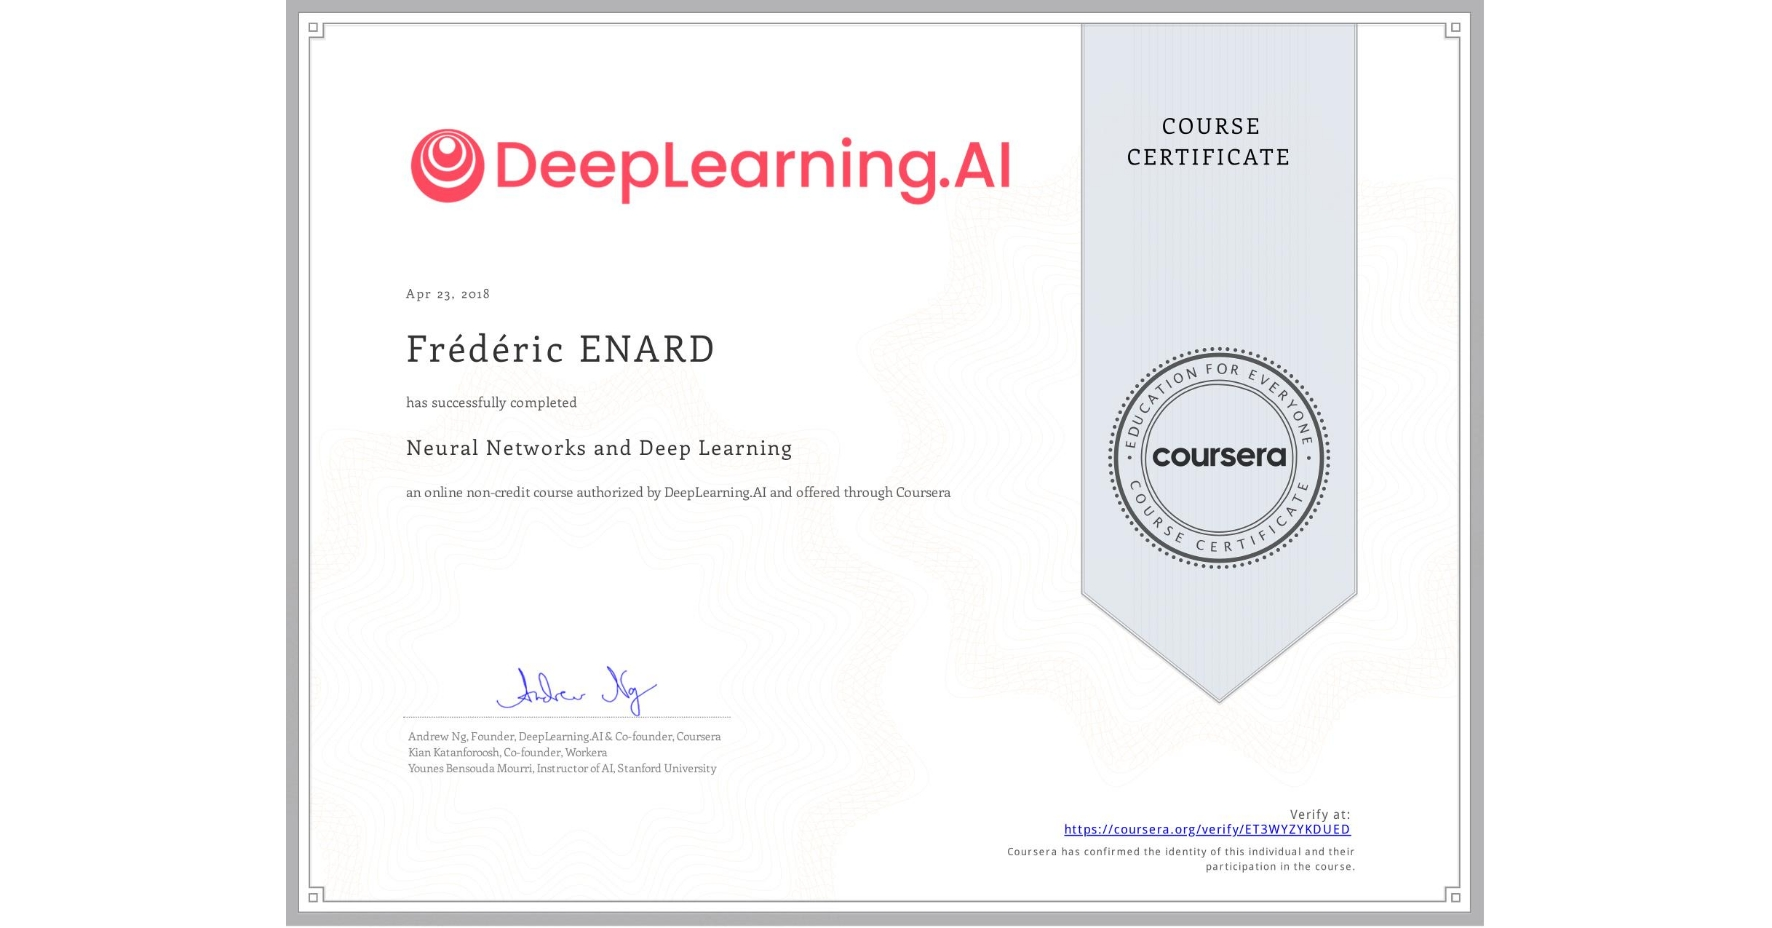 View certificate for Frédéric ENARD, Neural Networks and Deep Learning, an online non-credit course authorized by DeepLearning.AI and offered through Coursera